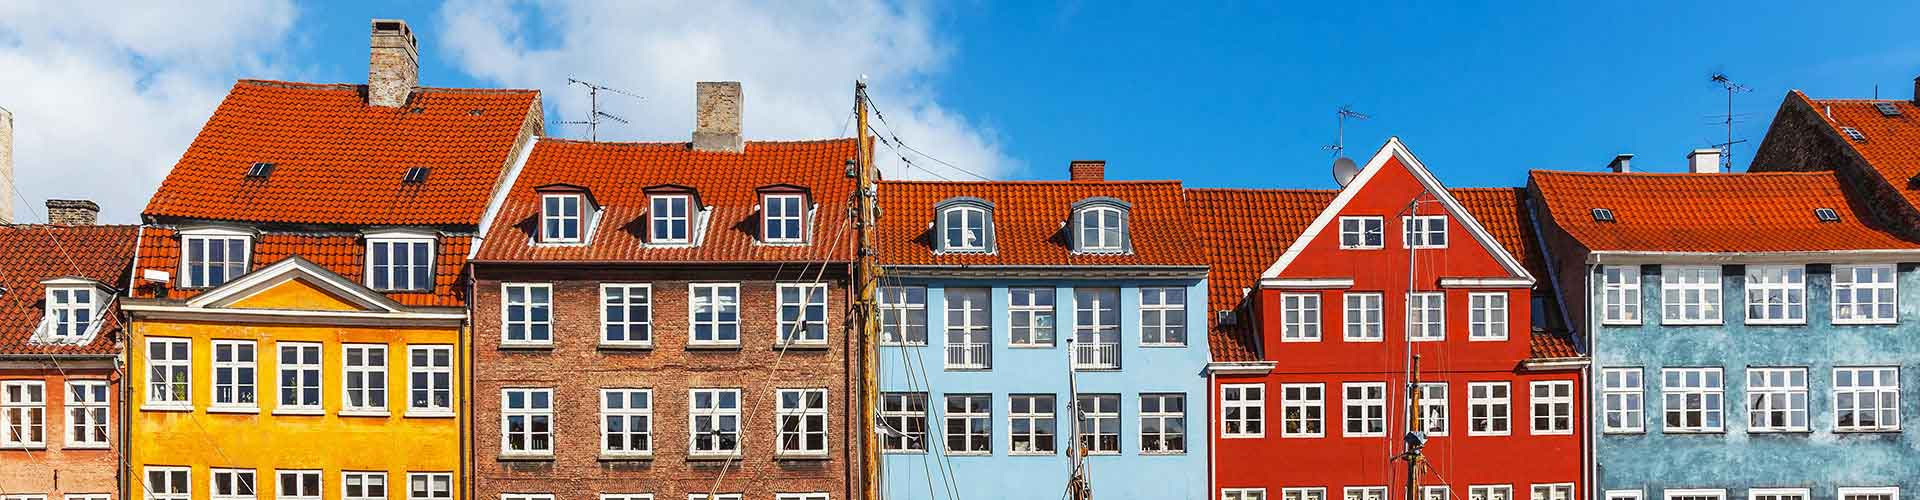 Copenhague - Appartements dans le quartier de Nørreport. Cartes pour Copenhague, photos et commentaires pour chaque appartement à Copenhague.